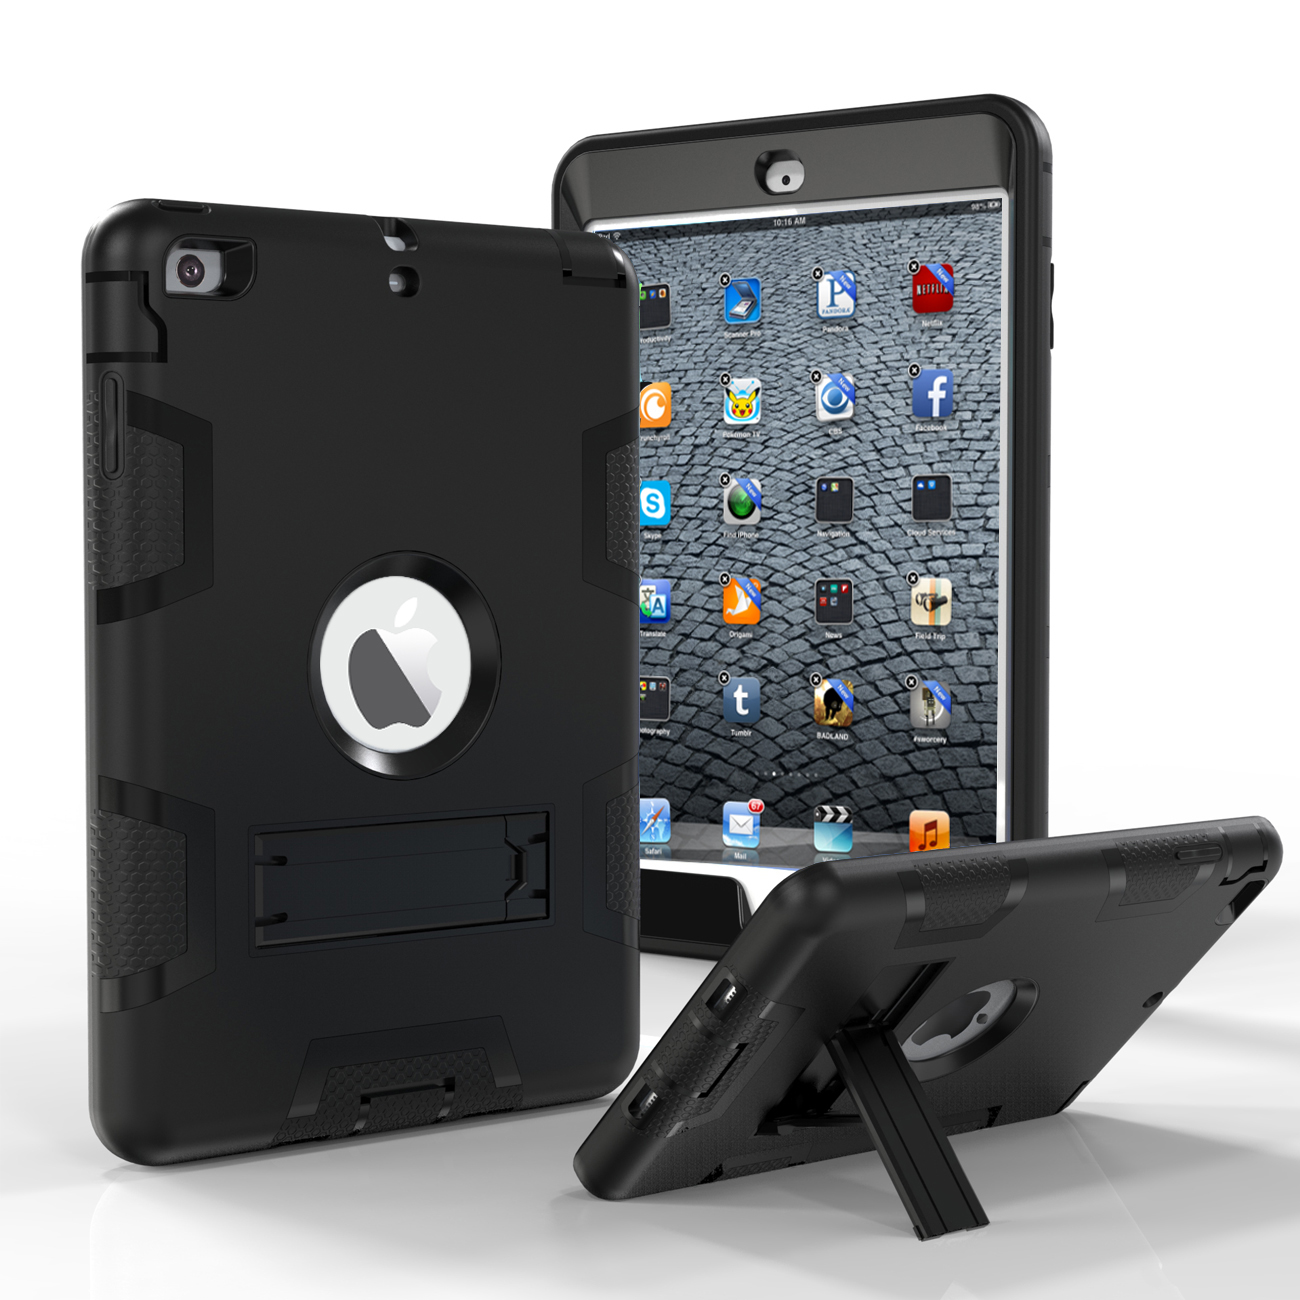 iPad Mini Case, iPad Mini 2 Case, iPad Mini 3 Case, Tekcoo [Troyal HY] Hybrid Shock Absorbing Defender Rugged Kickstand Silicone Hard Case Full Body Protective Cover For Apple iPad Mini 1/2/3